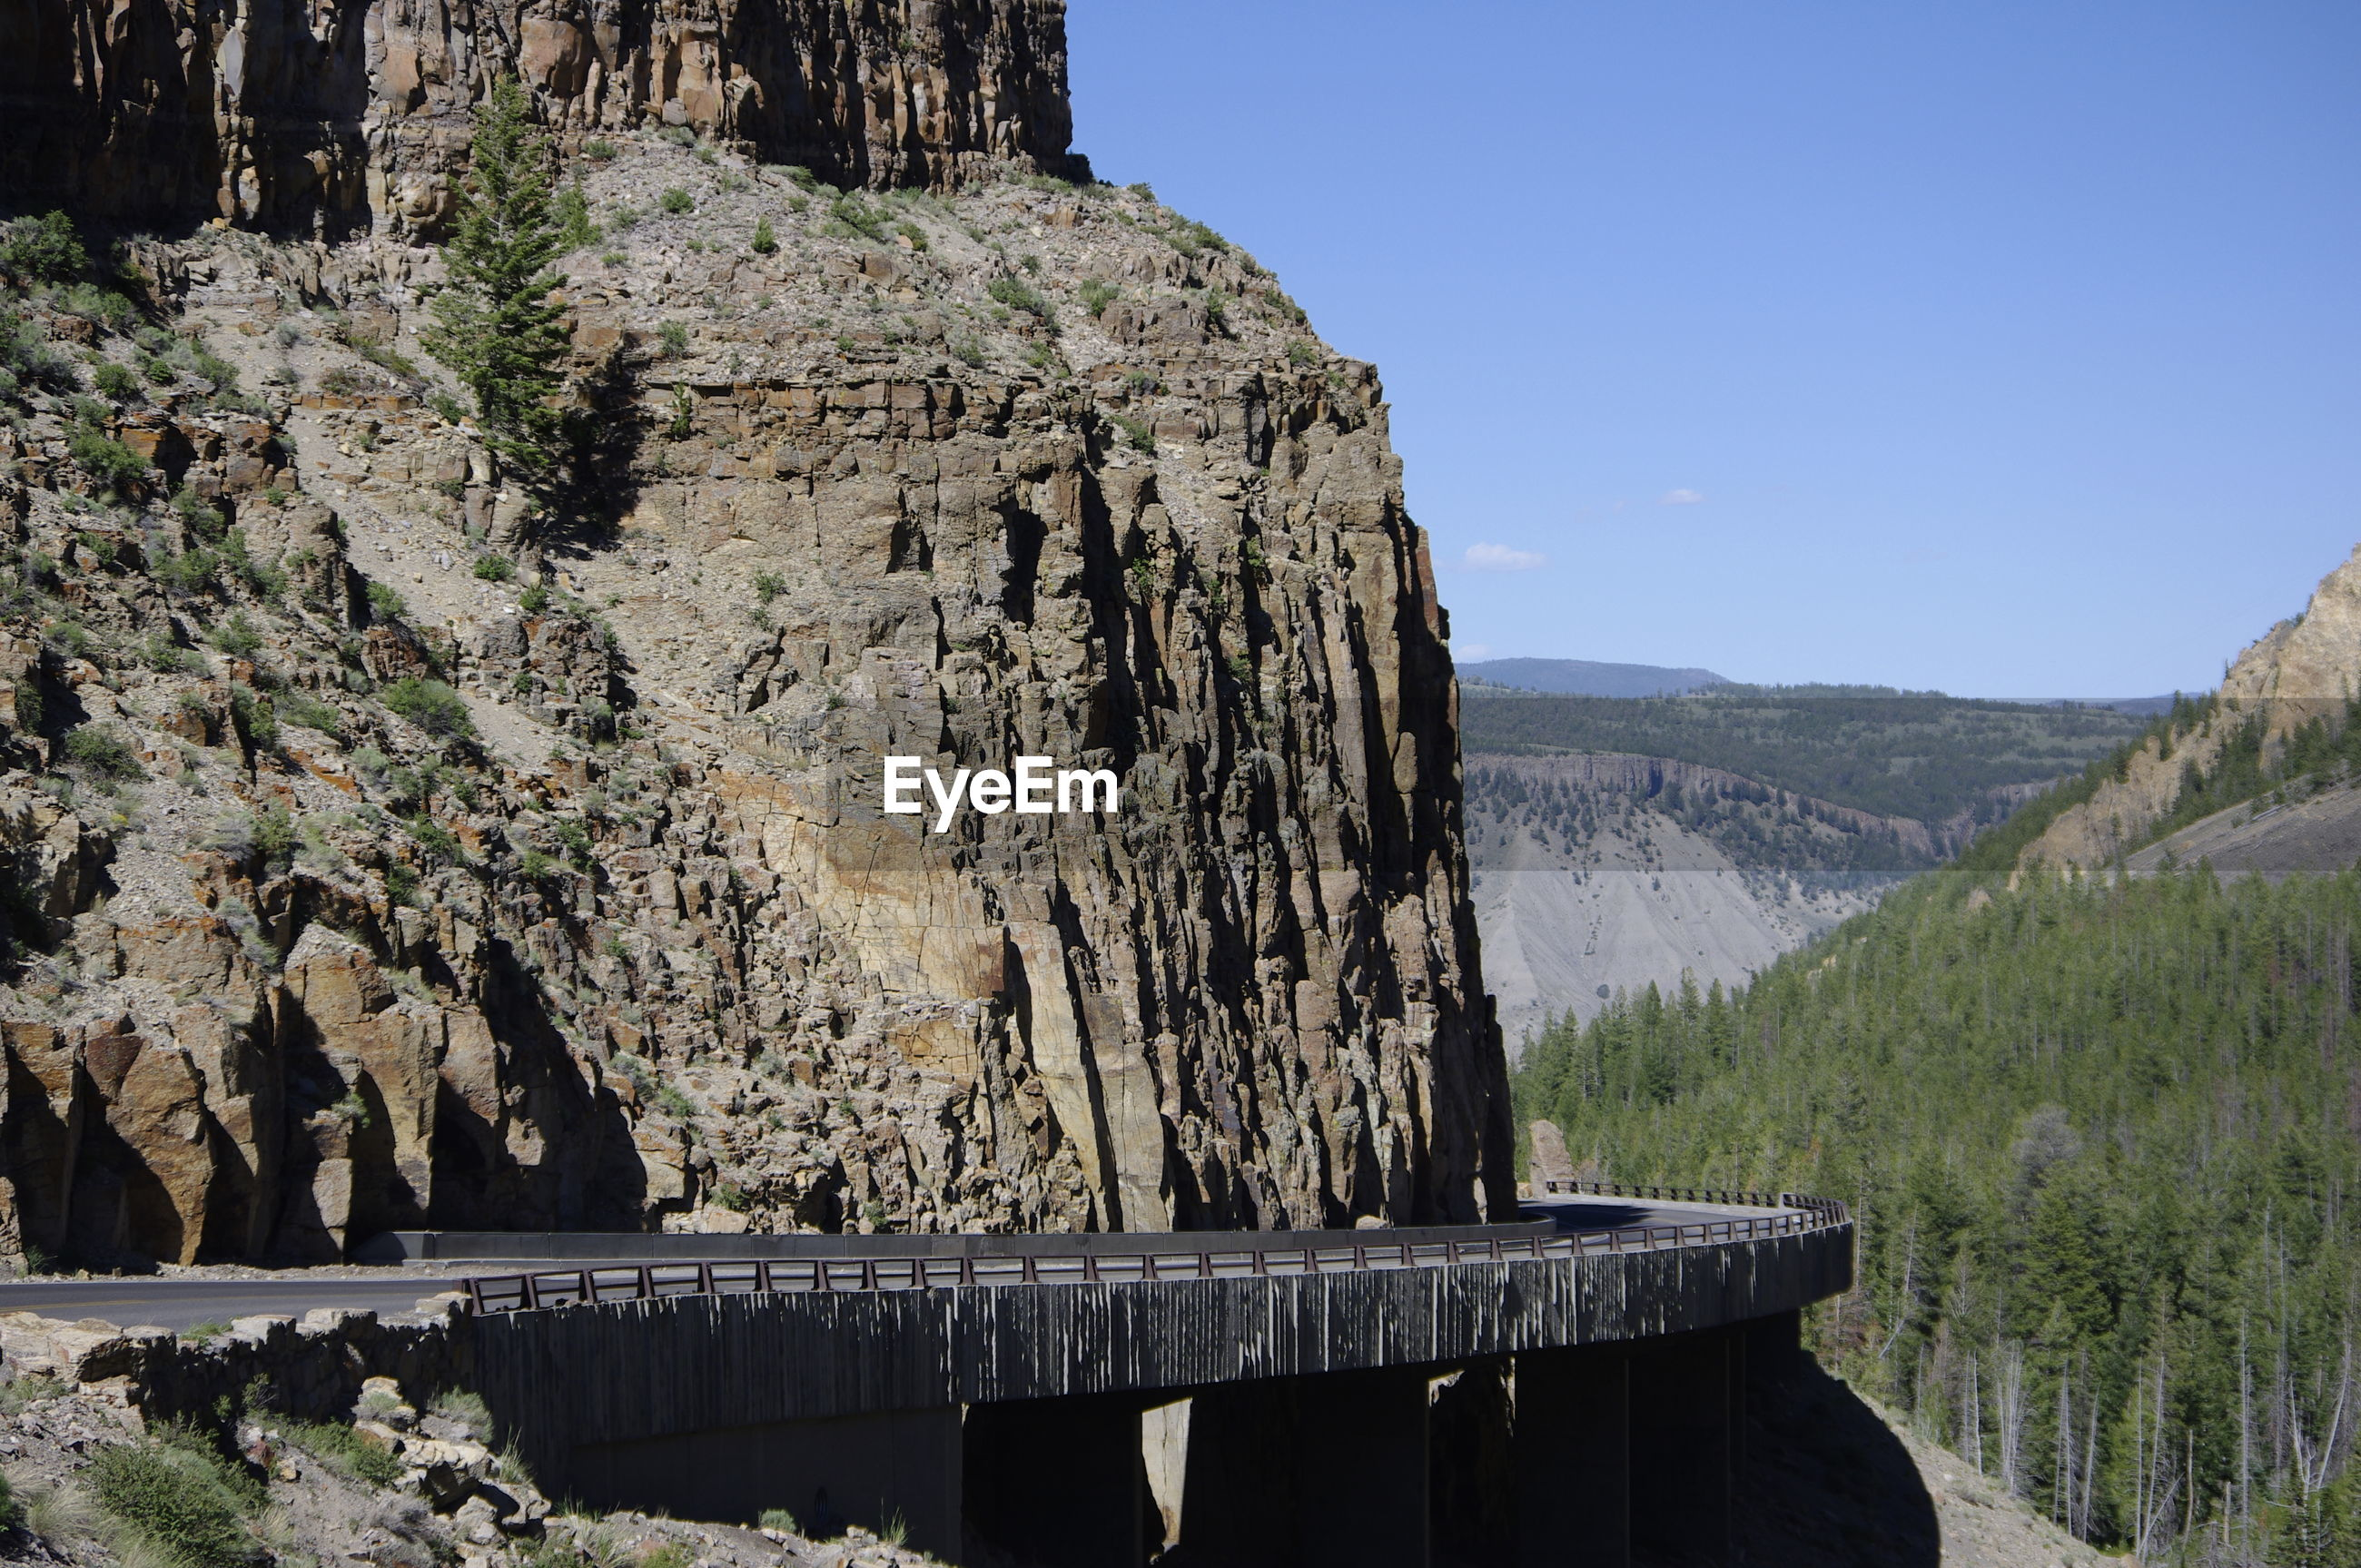 SCENIC VIEW OF ROCKY MOUNTAIN AGAINST CLEAR SKY